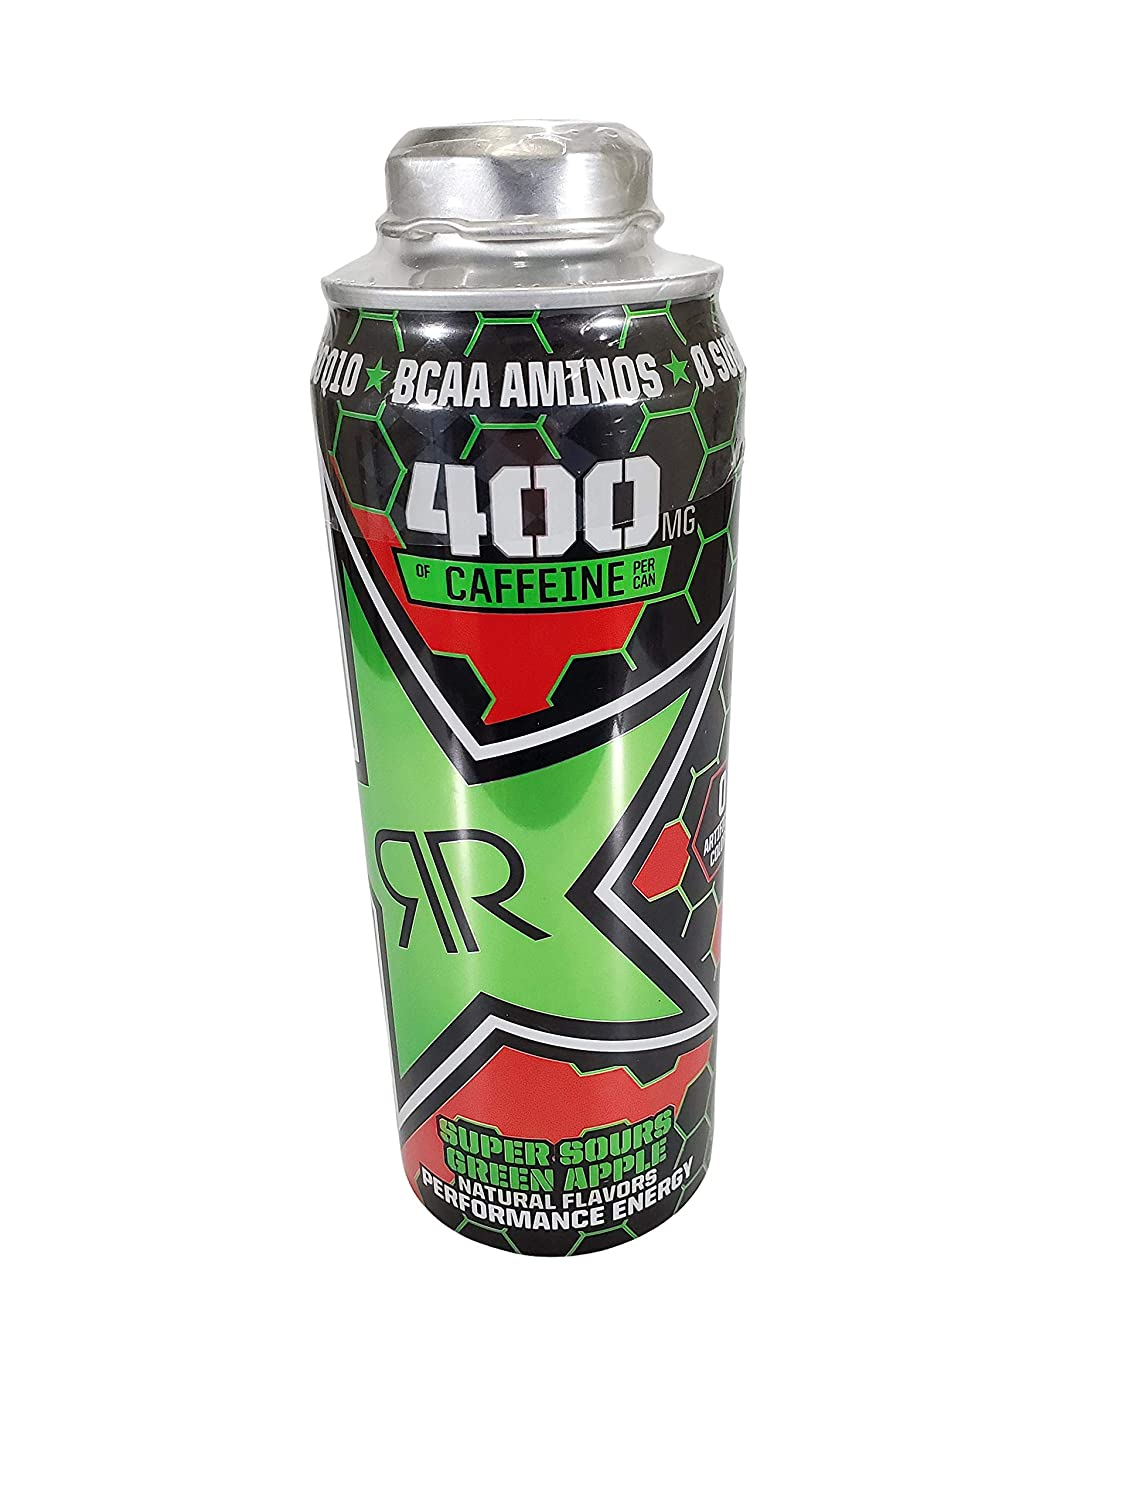 Rockstar Xdurance Energy Drinks in Resealable 24 Ounce Cans (Super Sour Green Apple, 12 Cans)